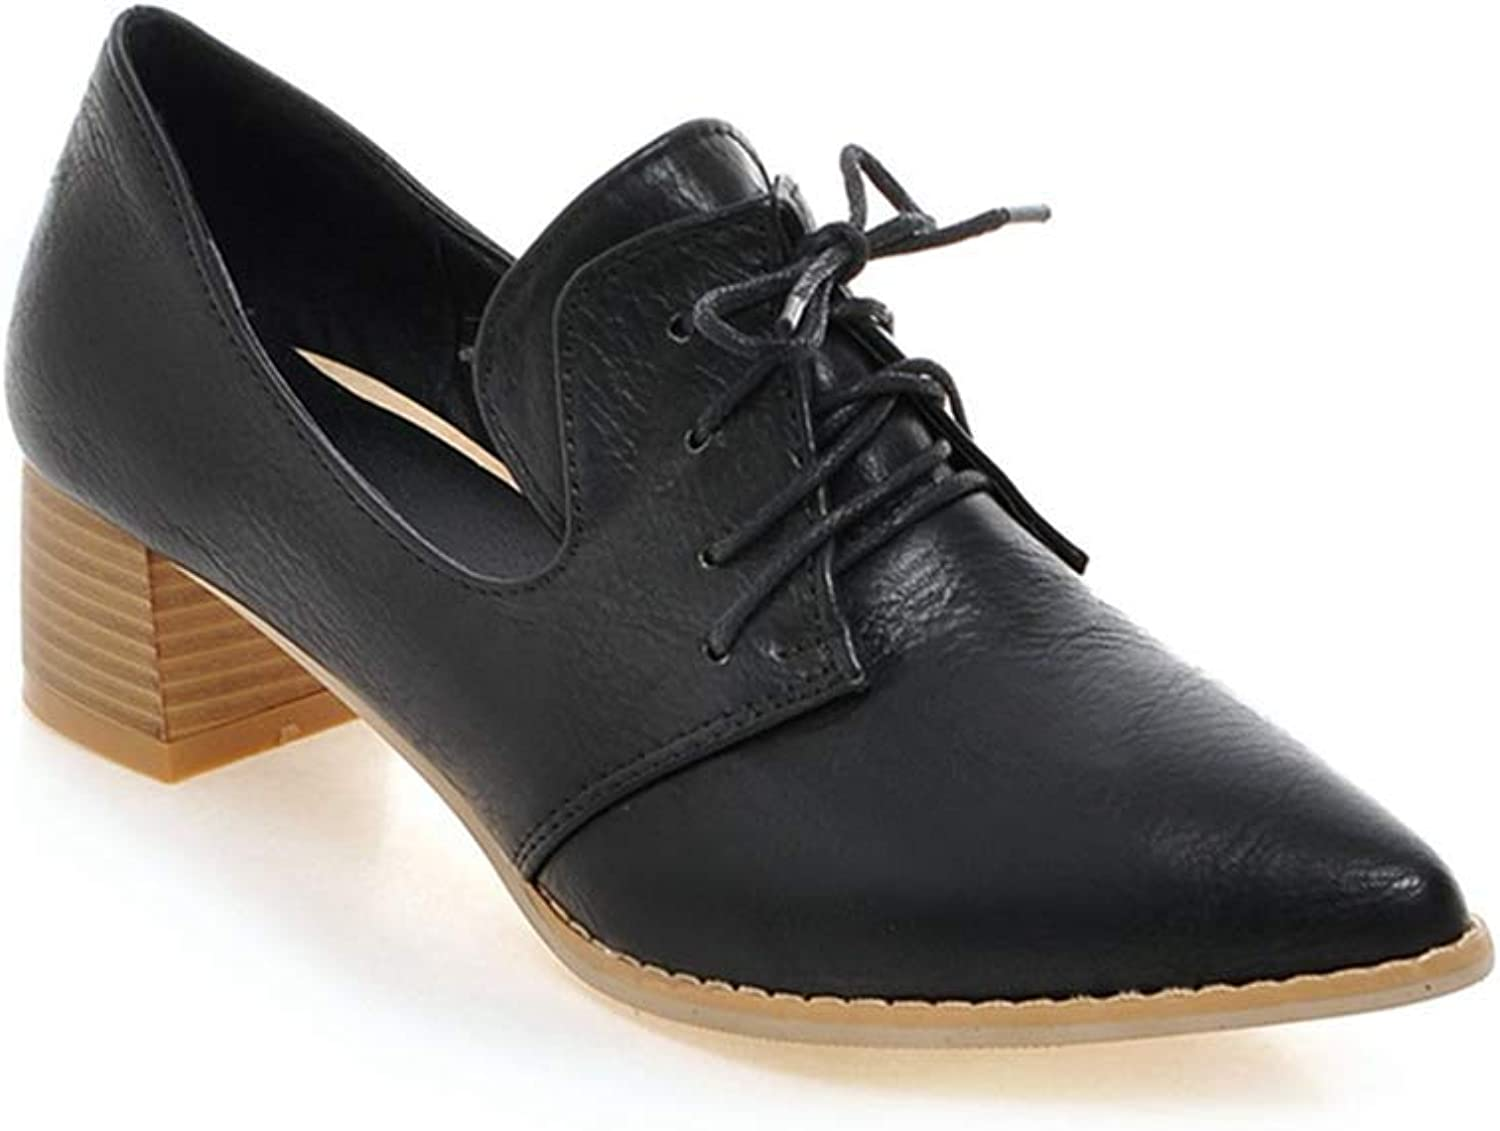 Elsa Wilcox Women Wingtip Lace Up Chunky Block Mid Heel Vintage Dress Oxfords shoes Pointed Toe Oxford Pump